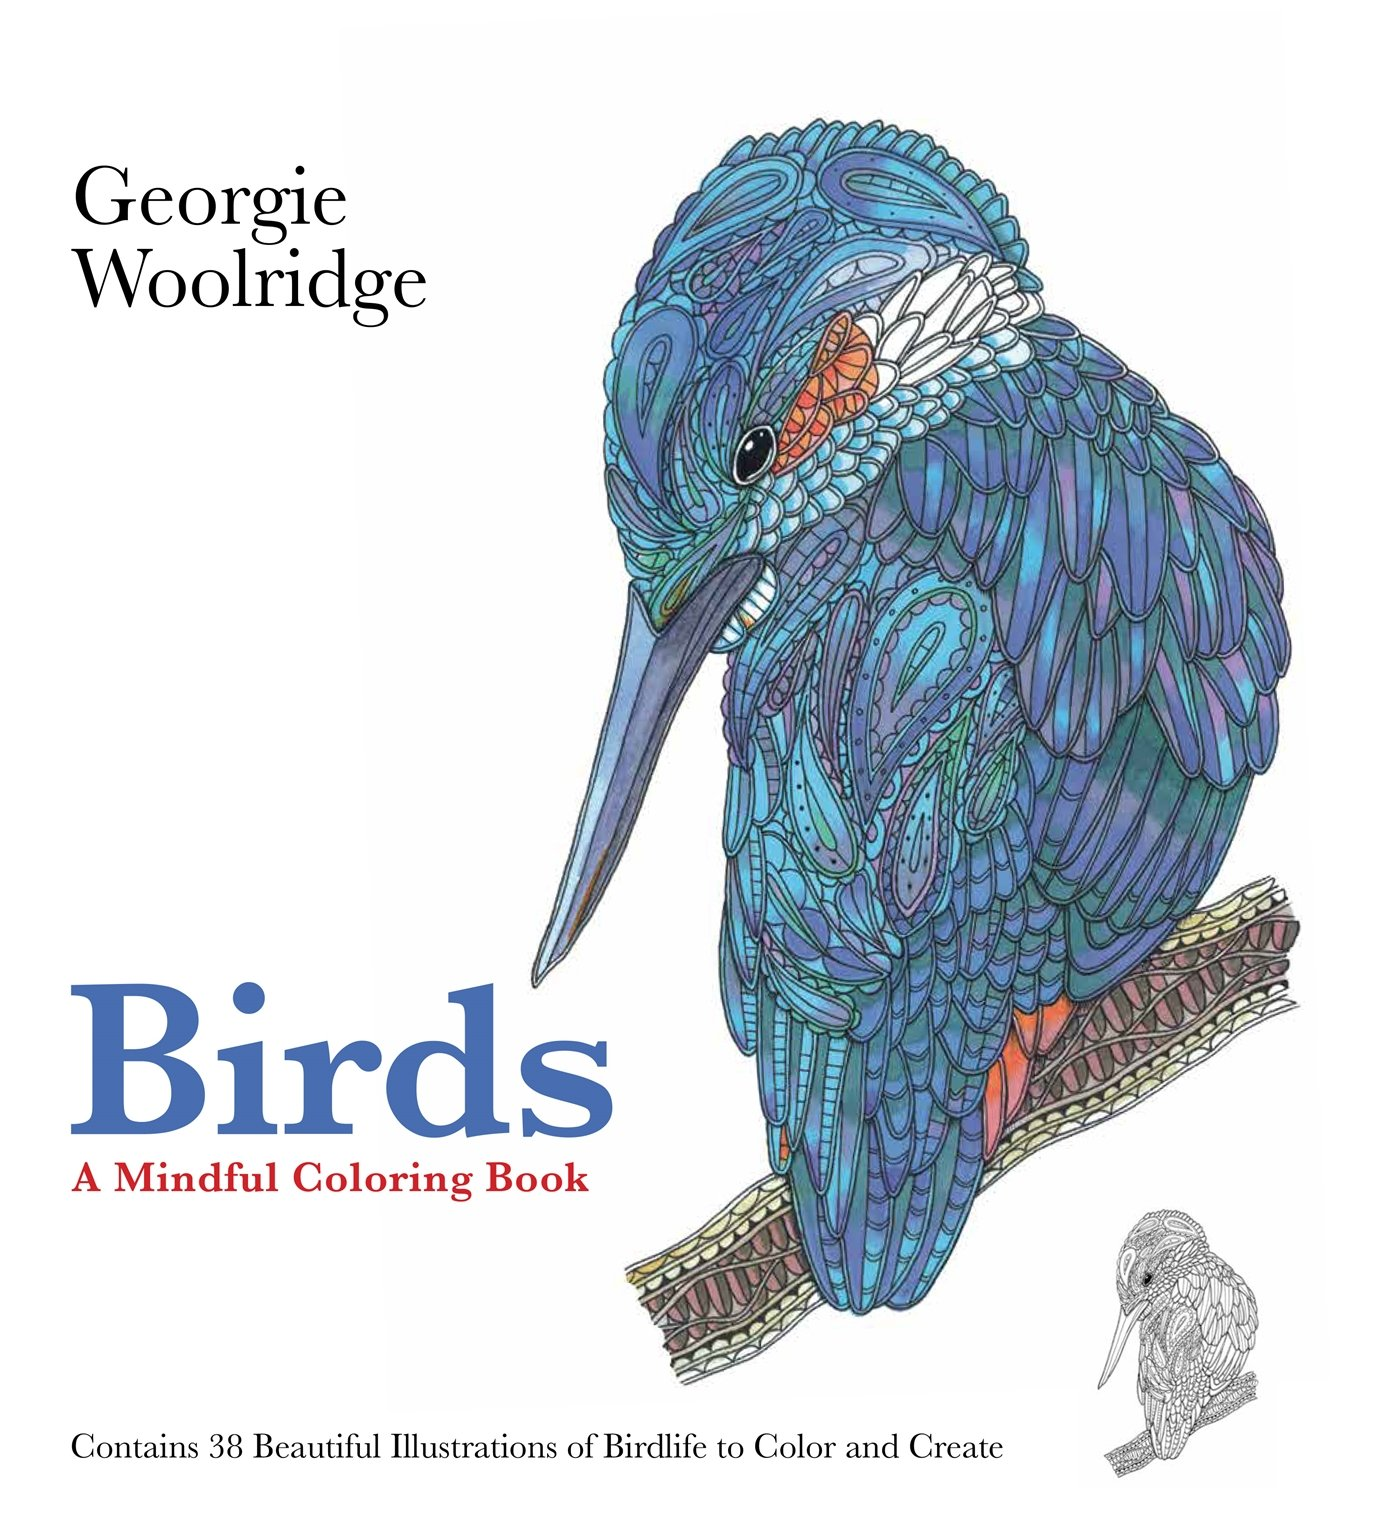 Amazon.com: Birds: A Mindful Coloring Book (9781250095022): Georgie ...